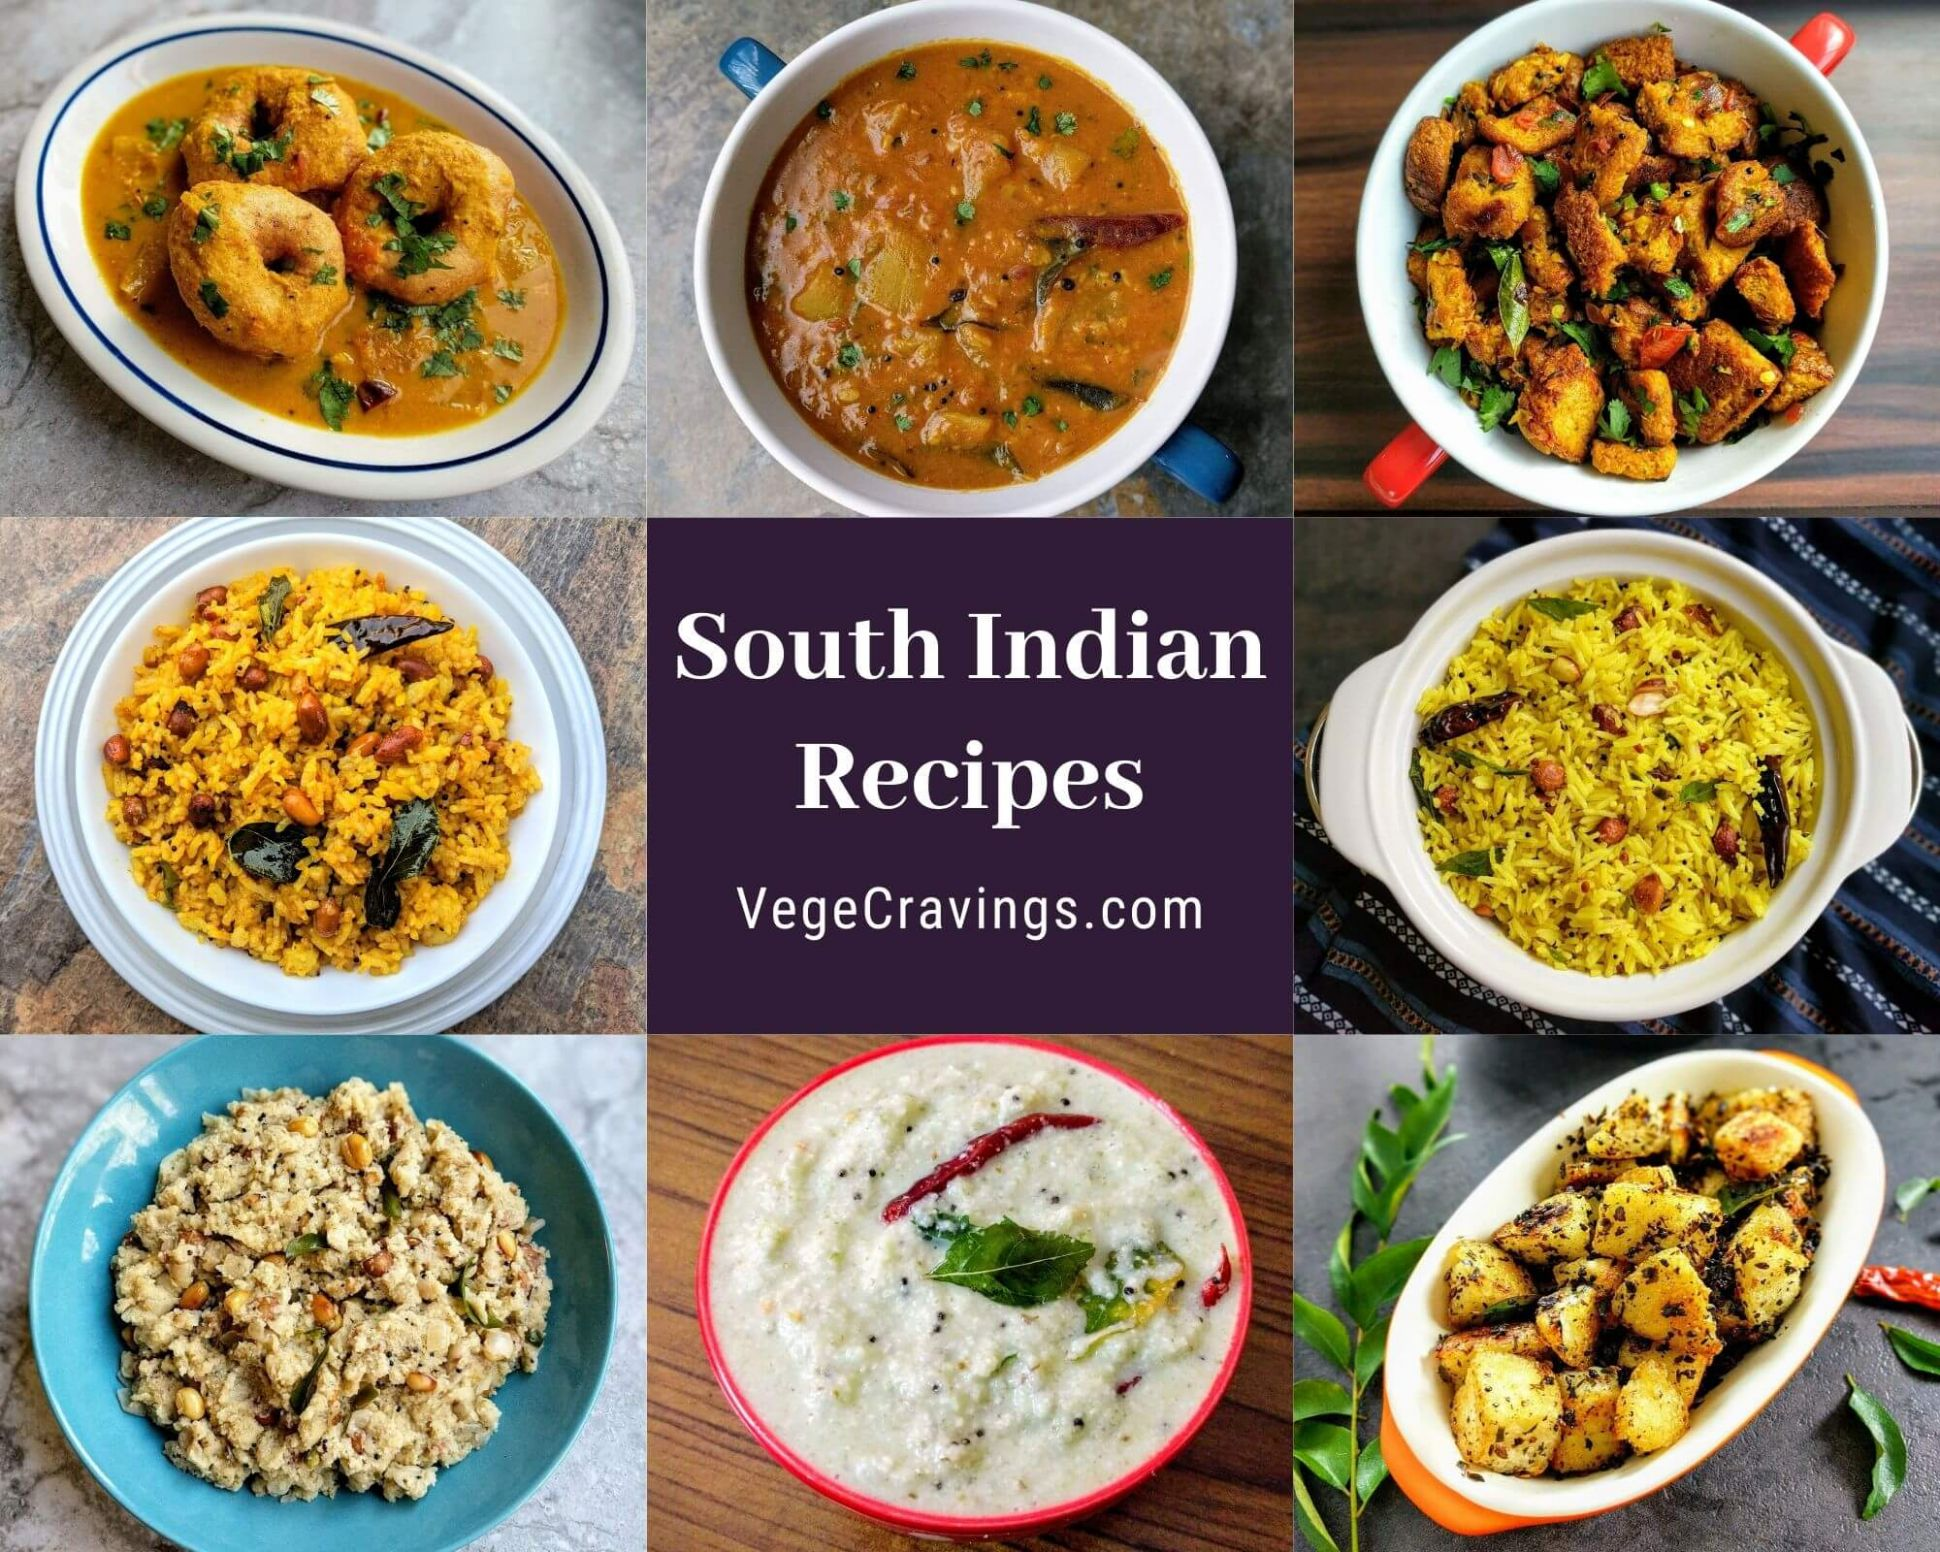 South Indian Recipes | 11 Delicious South Indian Dishes | VegeCravings - Dinner Recipes South Indian